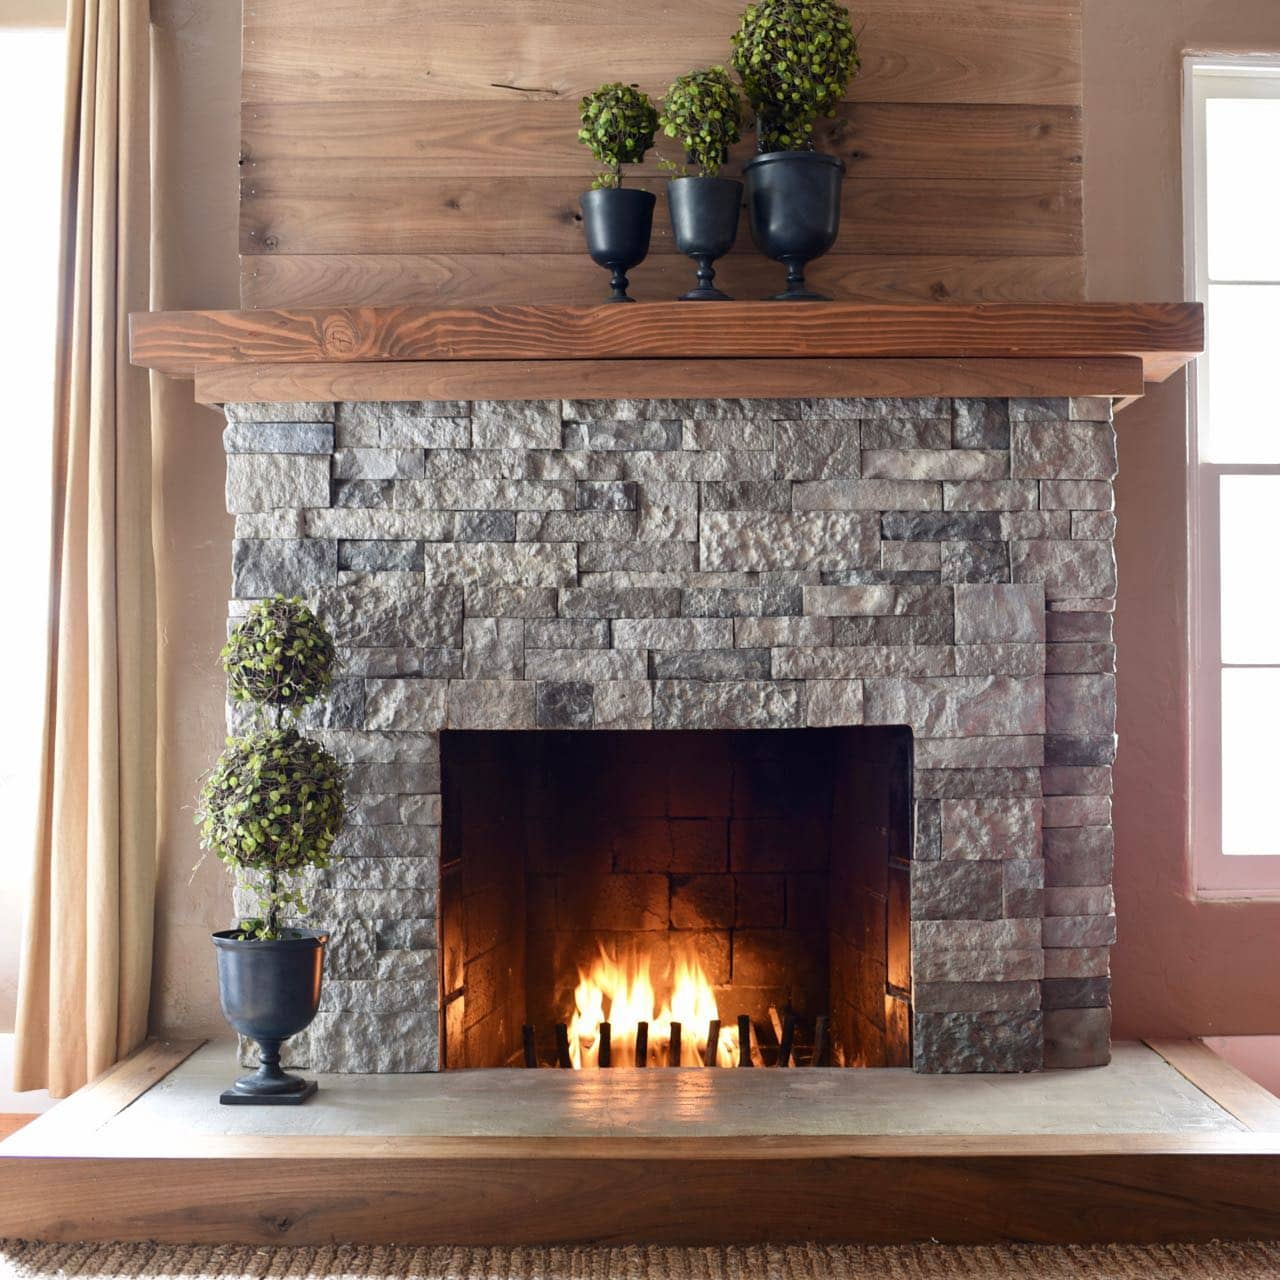 Airstone fireplace makeover make life lovely - How to make a brick fireplace look modern ...